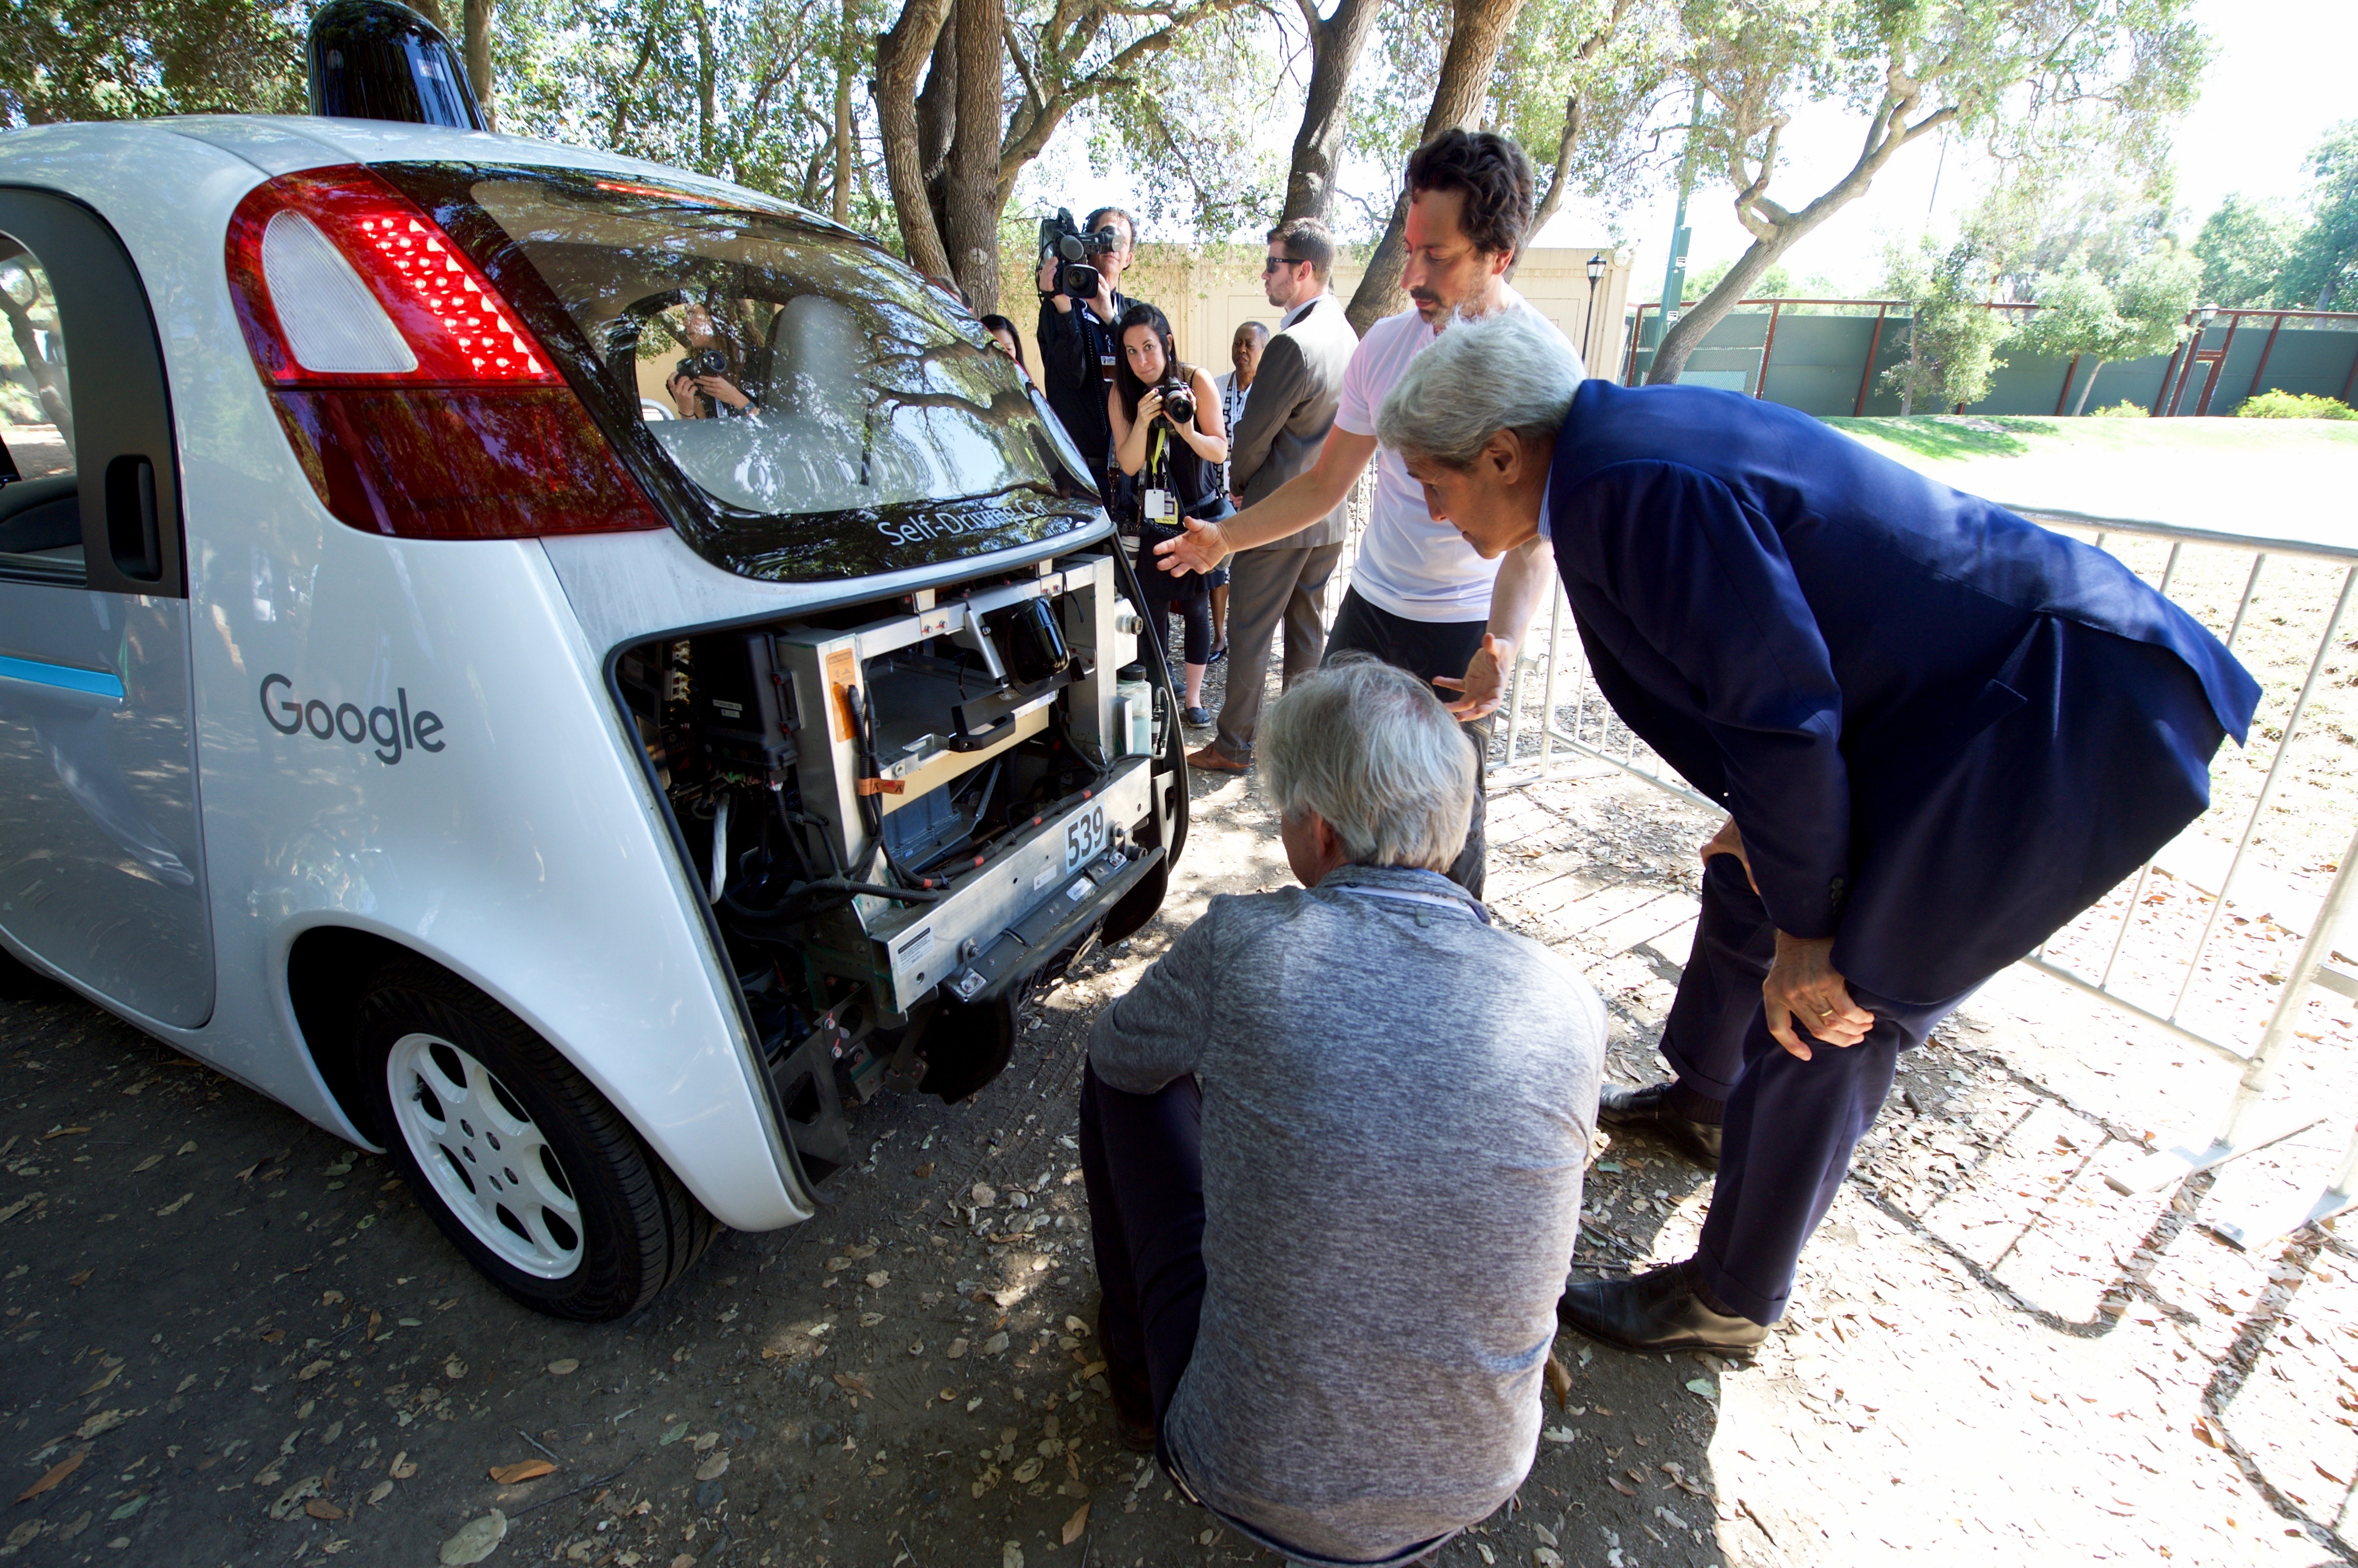 Secretary Kerry Views the Computers Inside One of Google's Self-Driving Cars at the 2016 Global Entrepreneurship Summit's Innovation Marketplace